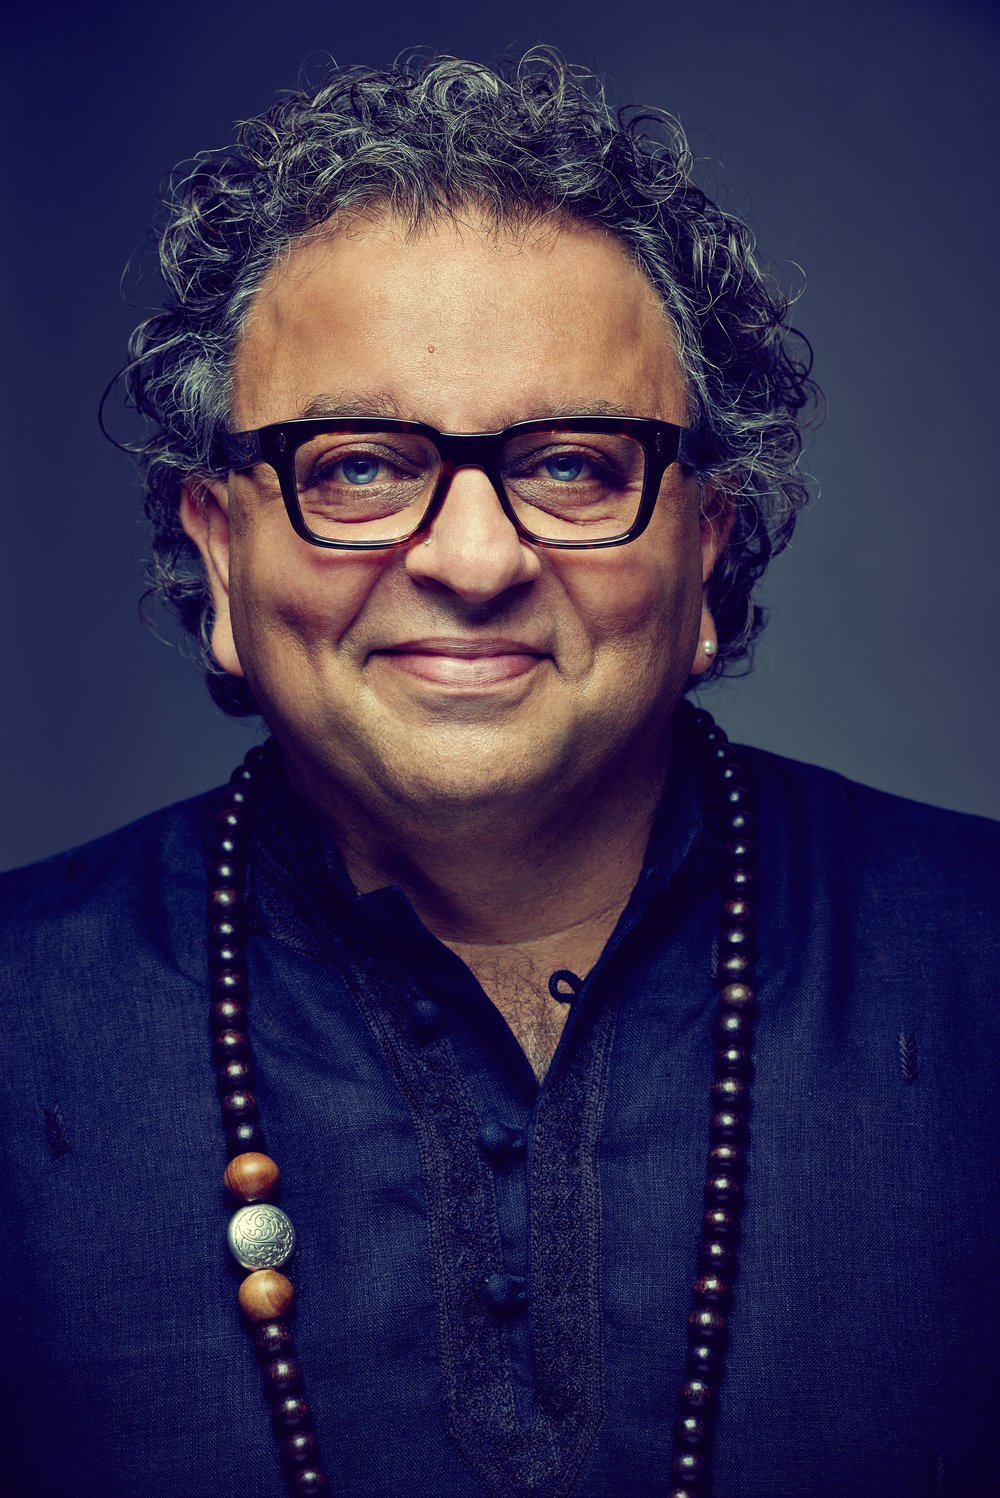 Vikram Vij was born in India in 1964 and lived in New Delhi and Bombay until the age of 20, when he went to study, live and work in Austria. While he was there he received his chef certificate from the Salzburg Hotel Management School. Vikram moved to Canada in 1989 to work at the Banff Springs Hotel in Alberta. Vikram became a certified sommelier from the International Sommelier Guild in 2000, and is passionate about pairing wines with his cuisine.  In September 1994, Vikram opened  Vij's Restaurant  in Vancouver, BC. In early 1995, a passionate and a creative Meeru Dhalwala, joined him and the two began collaborating on the menu. In December 2015, Vij's moved to a new, larger location on Vancouver's Cambie Street.